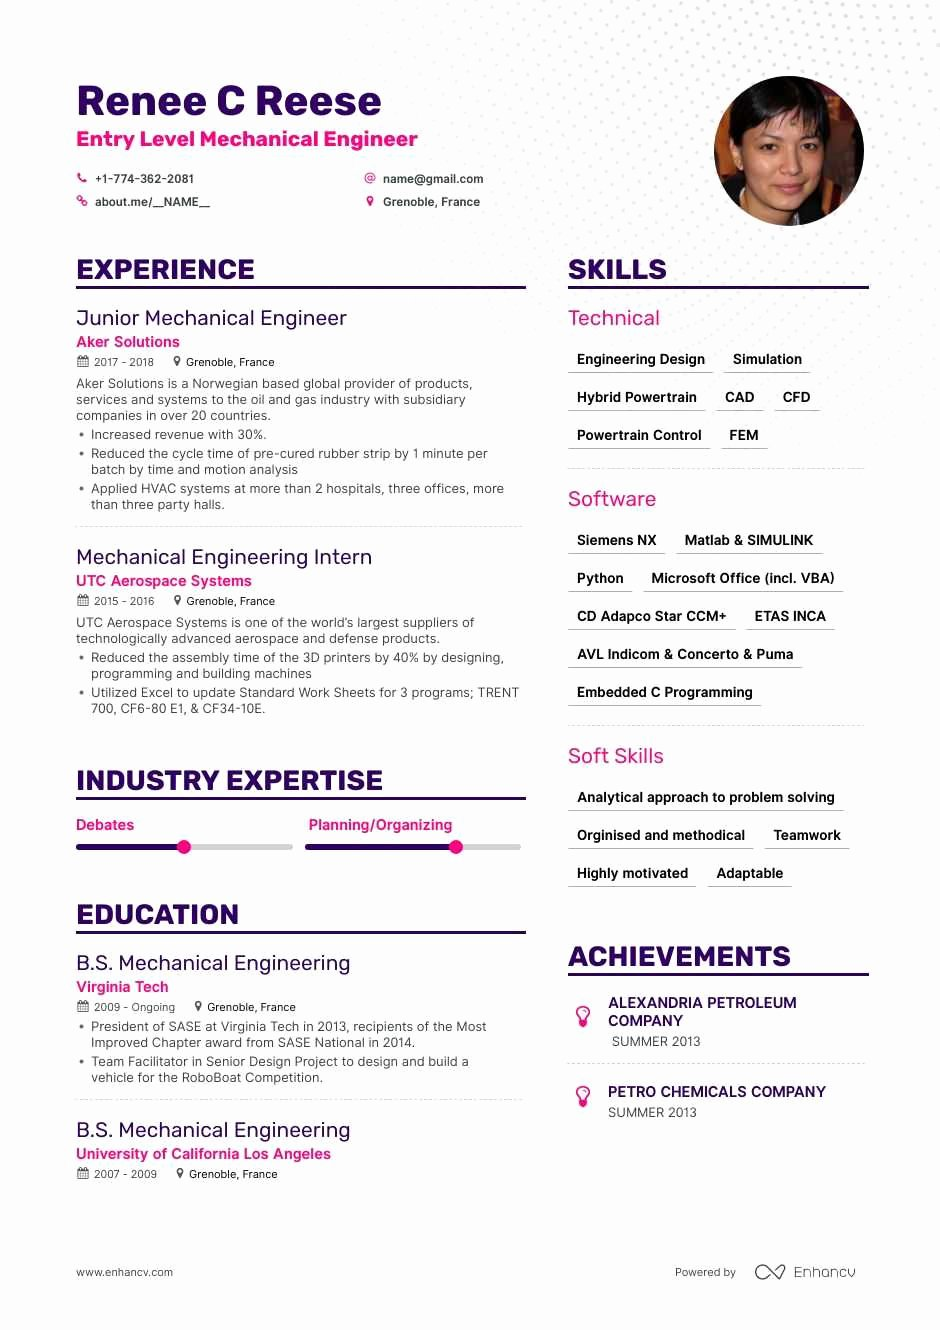 Experienced Mechanical Engineer Resume Inspirational Entry Level Mechanical Engineer Resume Samples and 6 Examples